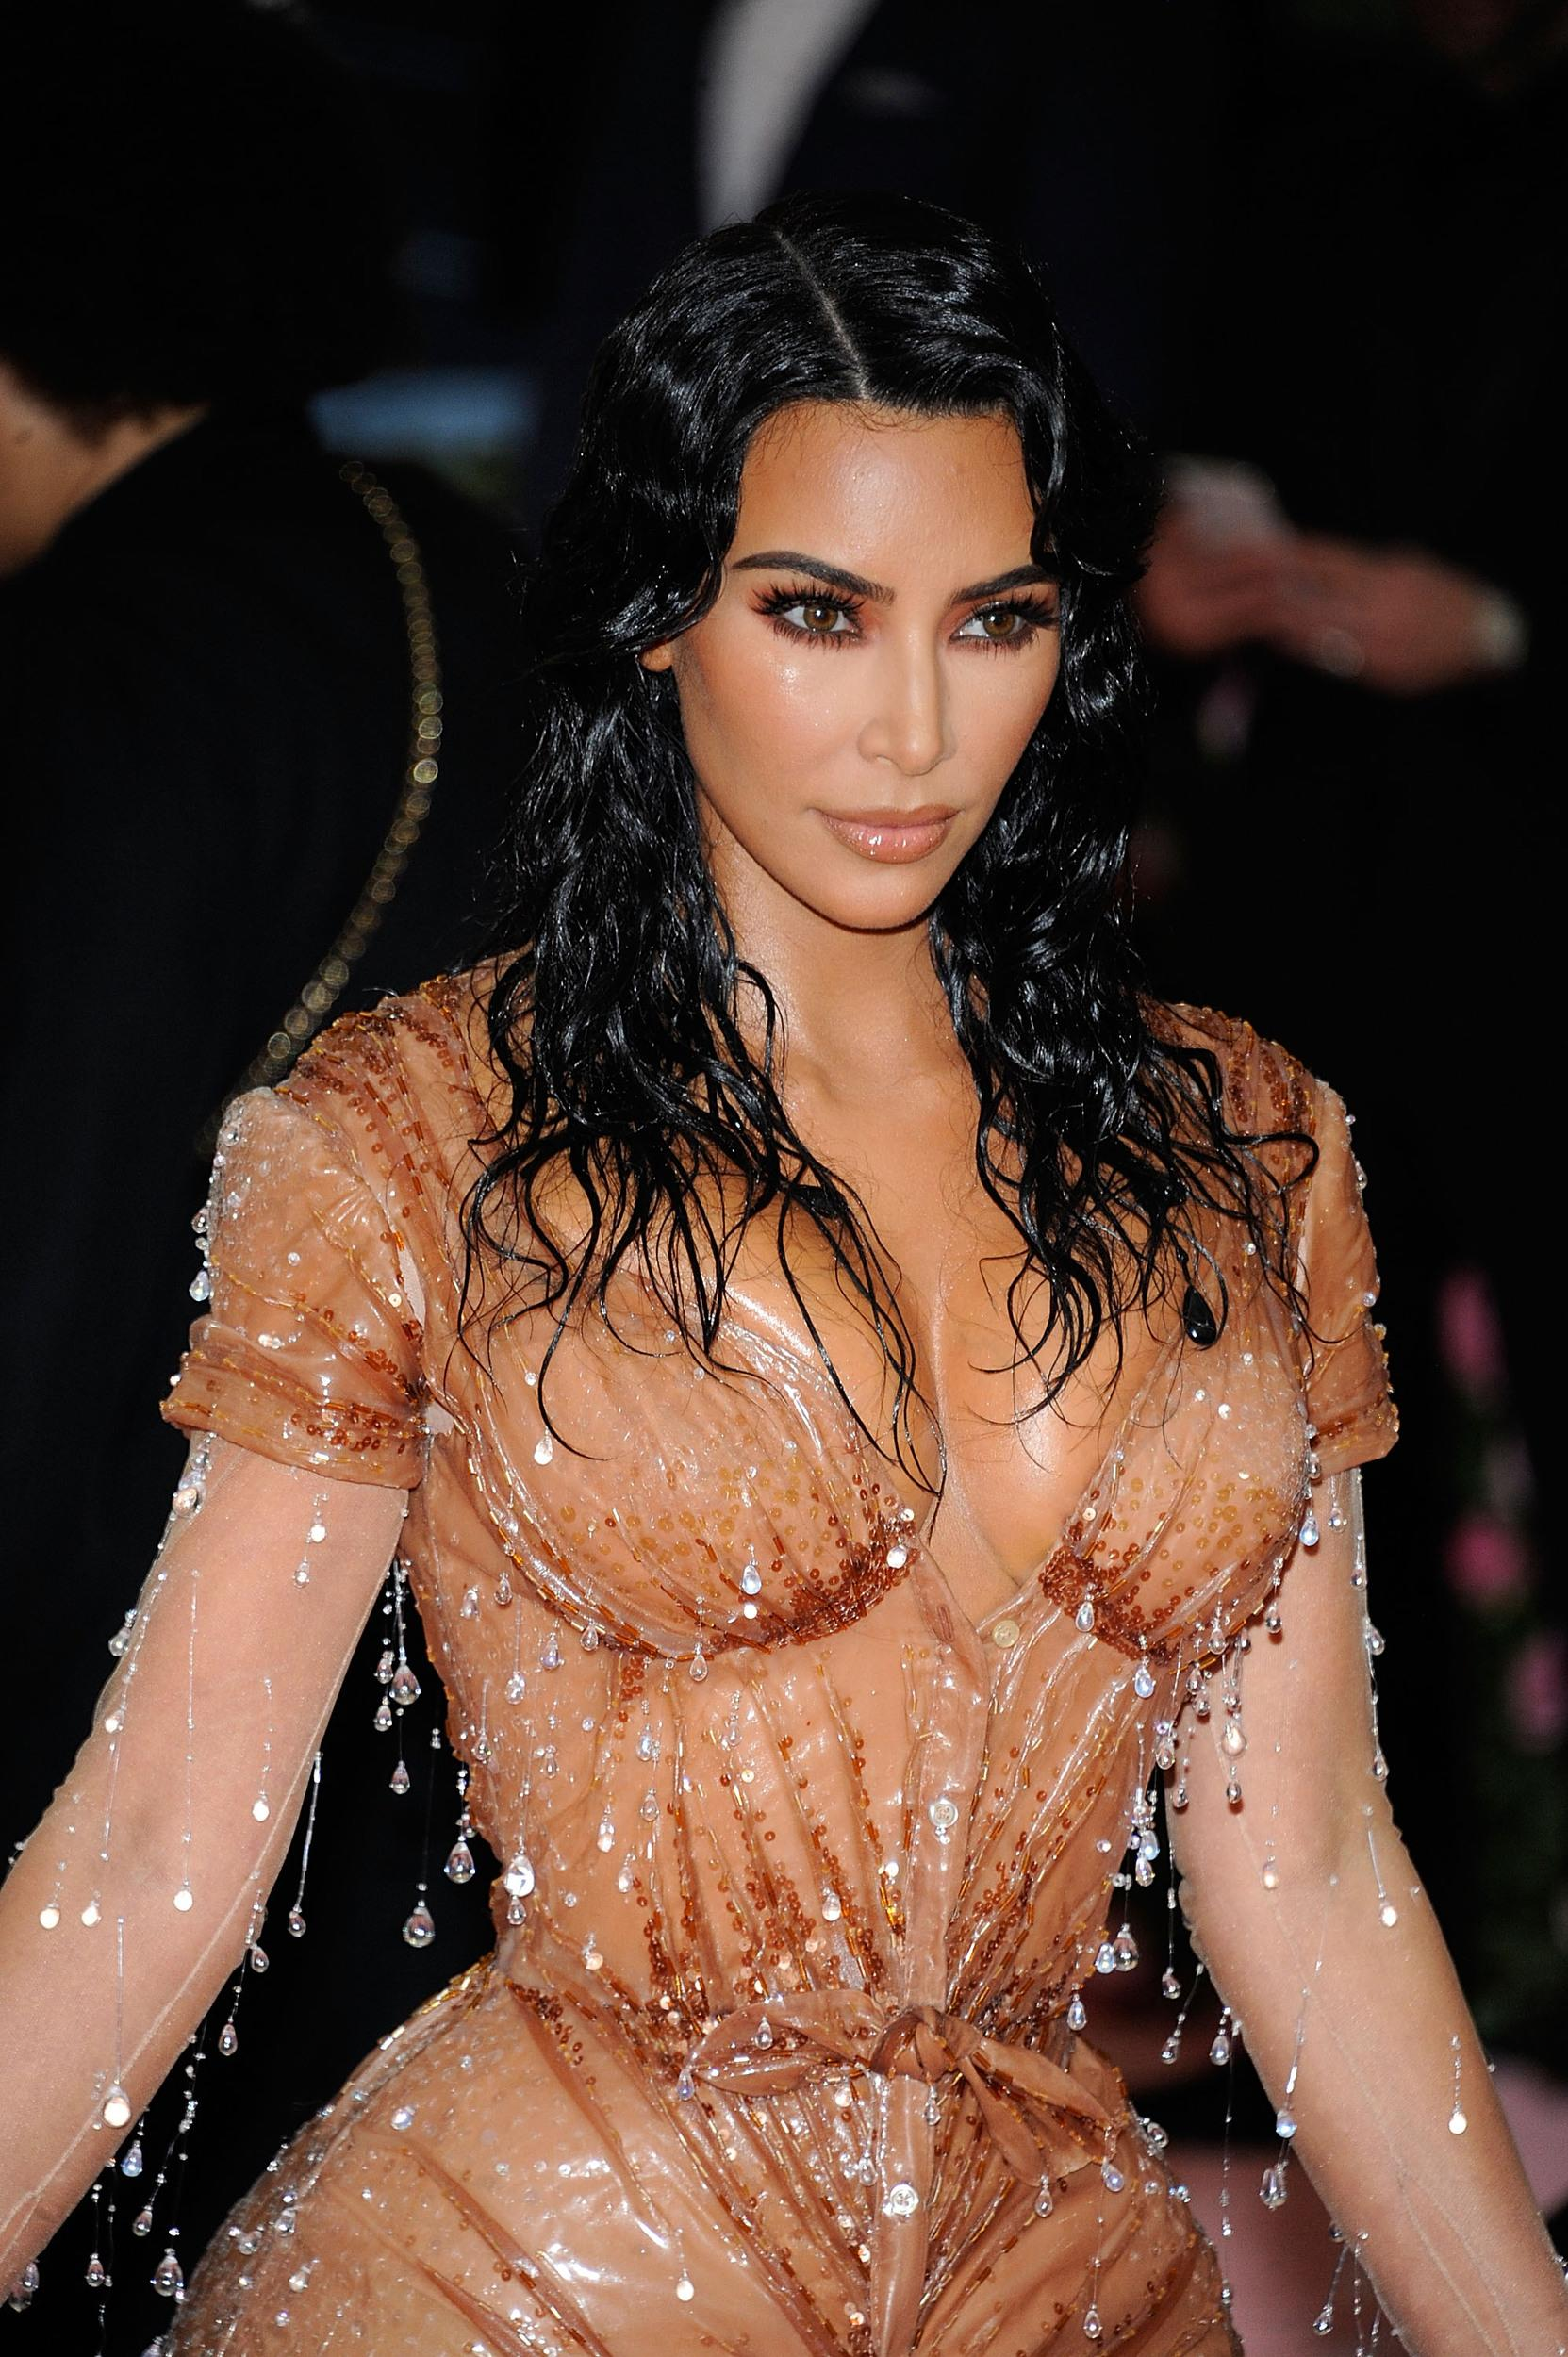 NEW YORK, NY - MAY 06:  Kim Kardashian West attends The 2019 Met Gala Celebrating Camp: Notes On Fashion - Arrivalsat The Metropolitan Museum of Art on May 6, 2019 in New York City.  (Photo by Rabbani and Solimene Photography/WireImage)